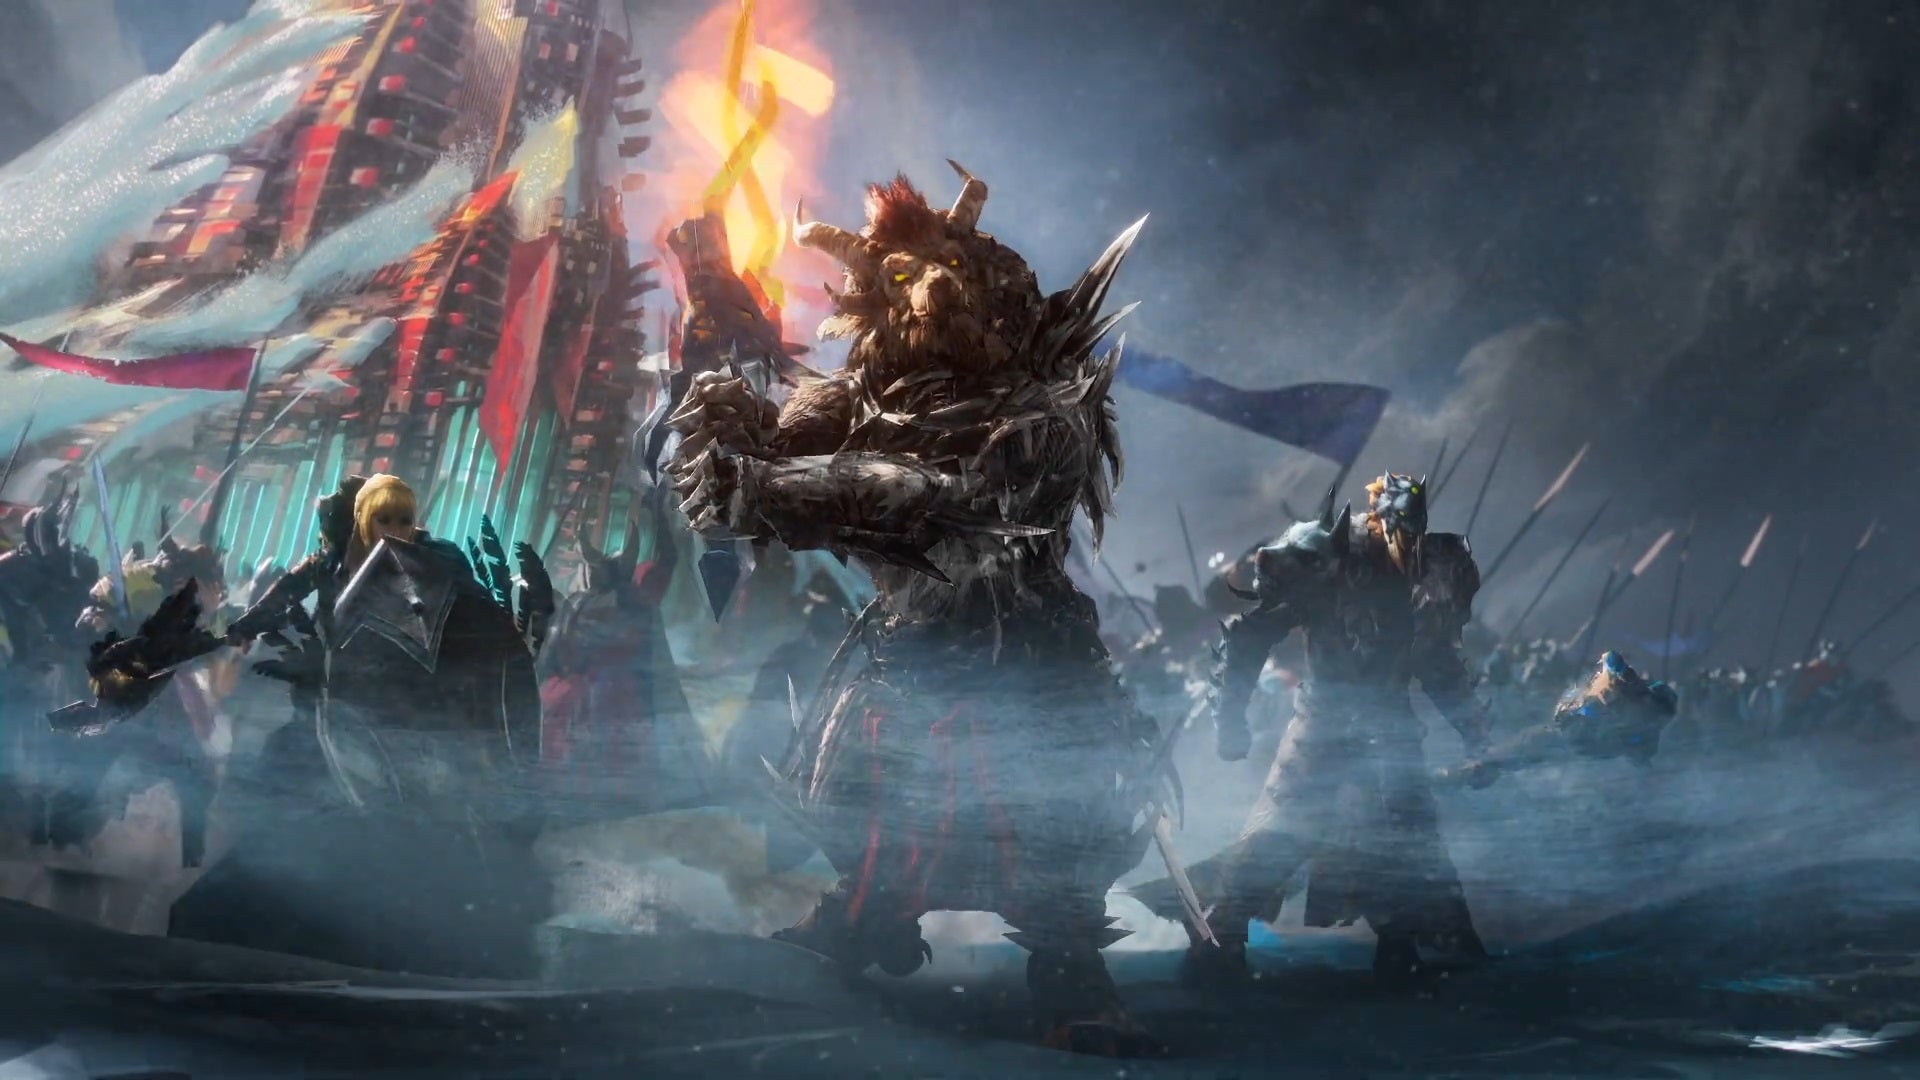 Upcoming Guild Wars 2 Expansion Won't Release With Voice Acting Due To Covid-19